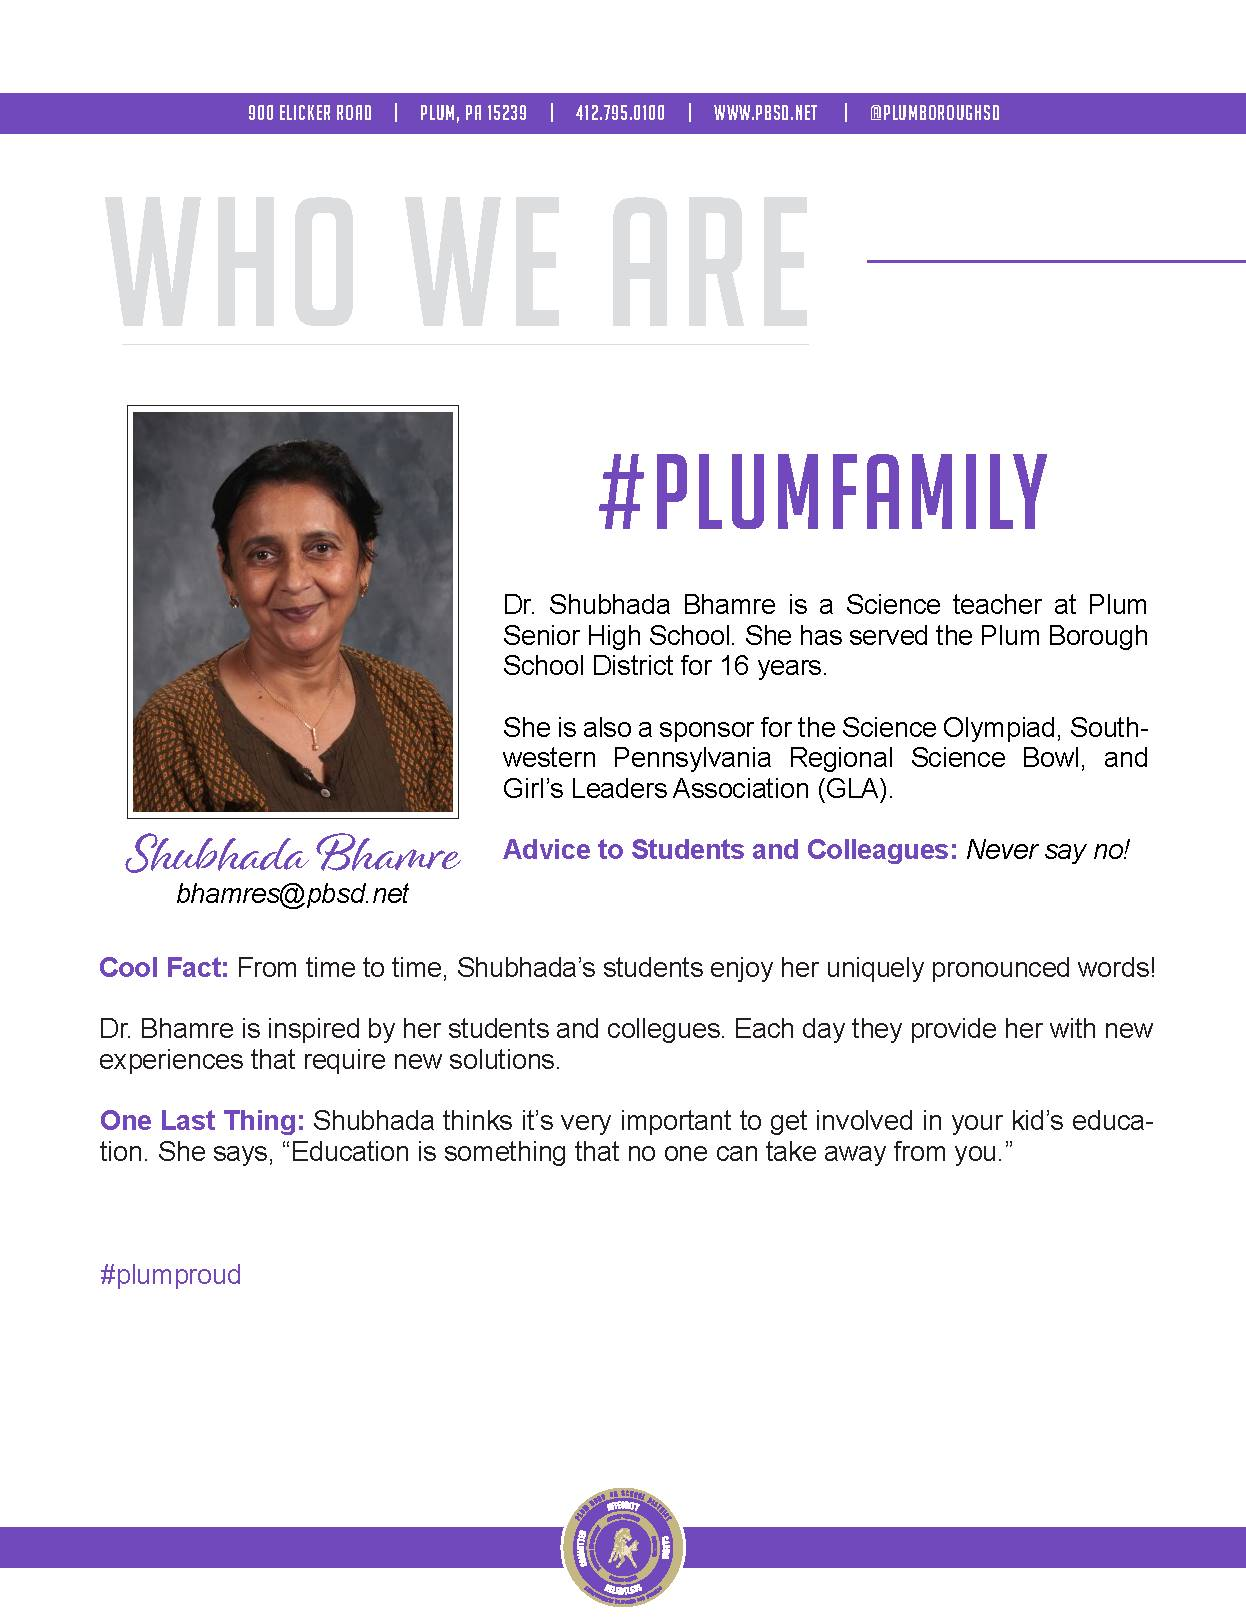 Who We Are Wednesday features Shubhada Bhambre.